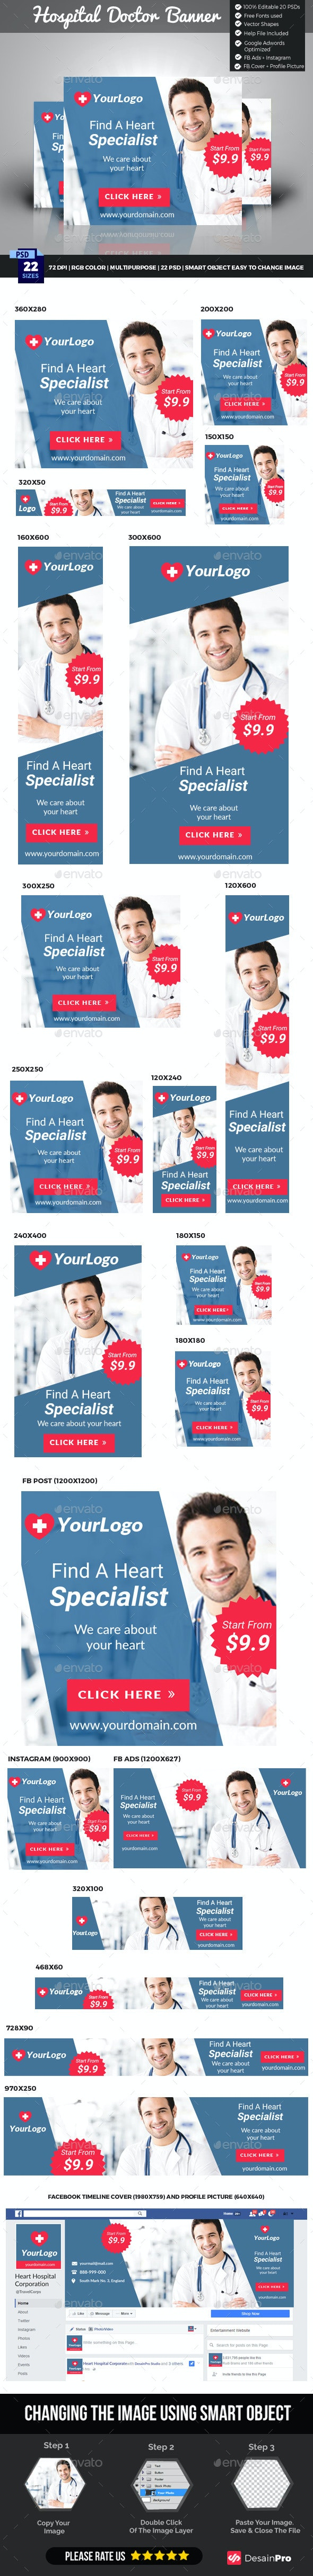 Hospital Doctor Banner - Banners & Ads Web Elements